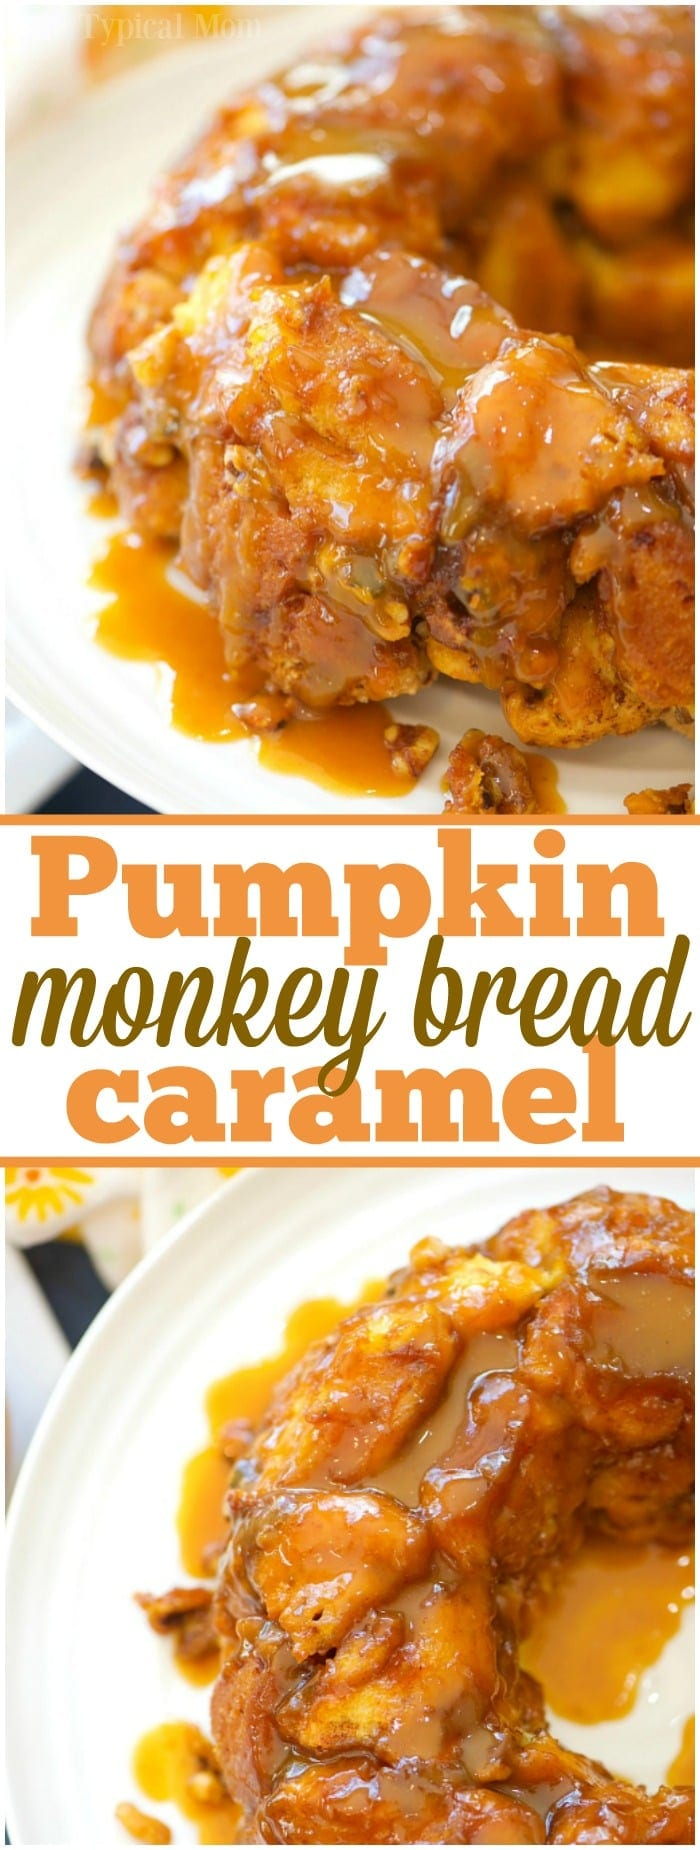 This is the most amazing caramel pumpkin monkey bread you will ever make and it is really easy too!! The best Fall breakfast or dessert I've ever made!